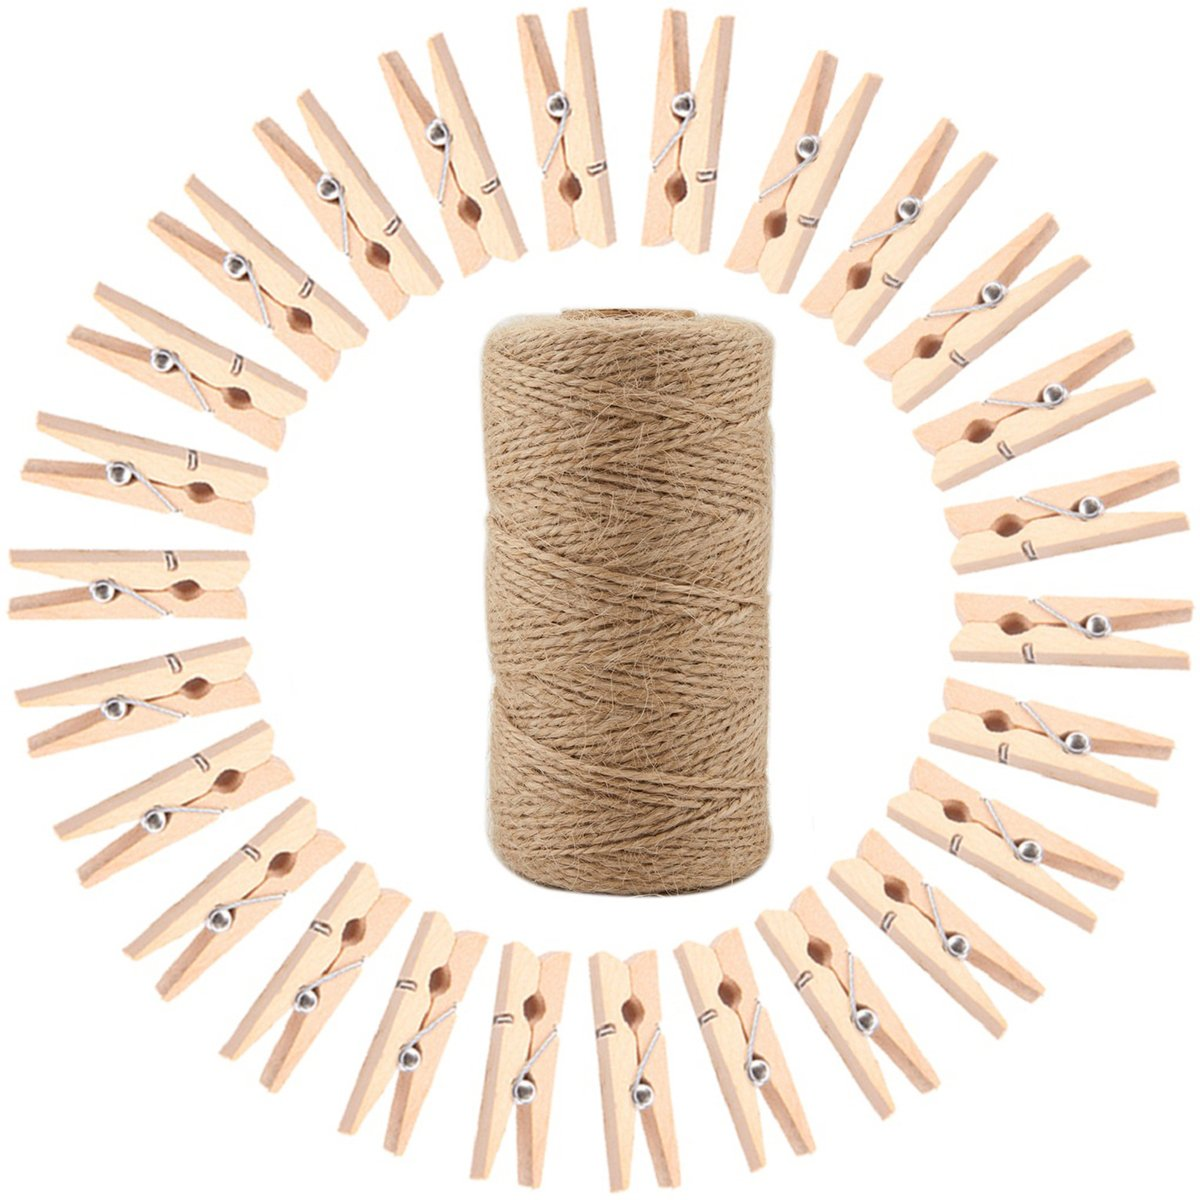 Omlopp 298 Feet 2mm Natural Jute Twine and Wooden Clothespins - Gift Wrap Twine String For Crafts, Picture Hanging Photo Display String With Clips (50)